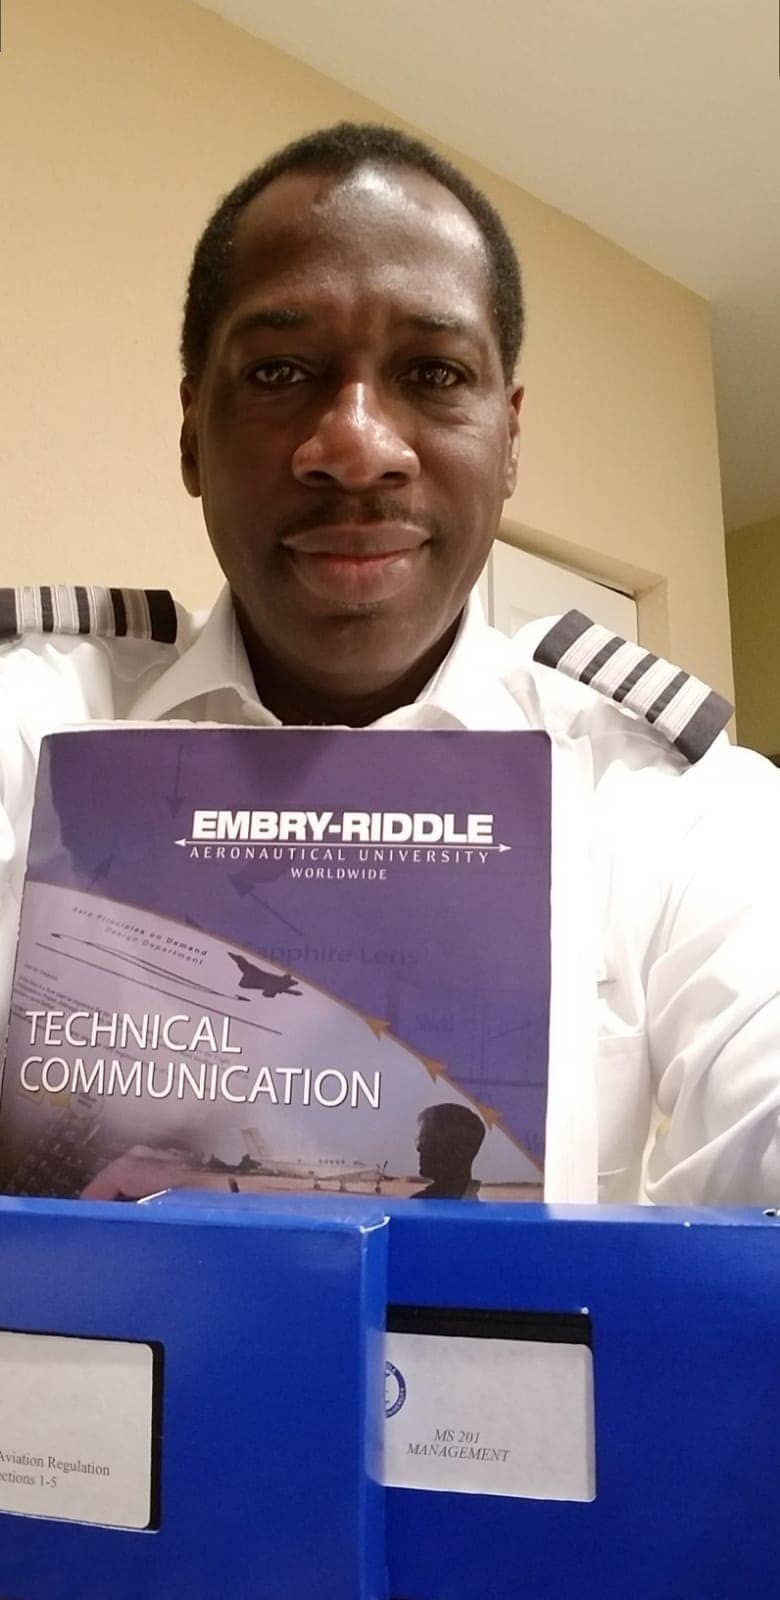 pilot Garfield McFarlane holds an embry-riddle pamphlet